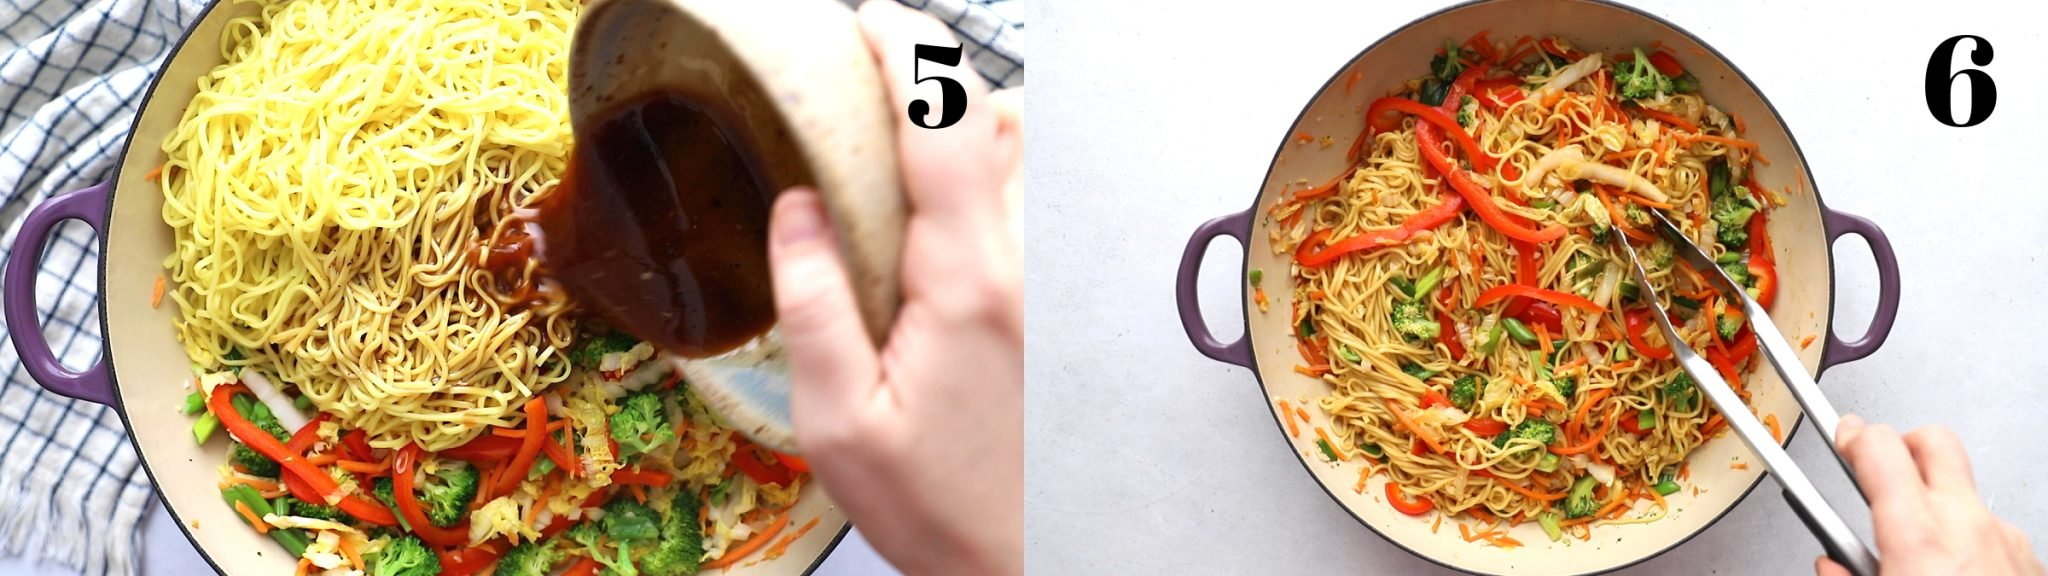 """2 stitched together images: left image is labeled """"5"""" and is sauce being poured over a skillet with noodles and sauteed veggies in it. right image is labeled """"6"""" a d is everything all mixed together in the skillet"""